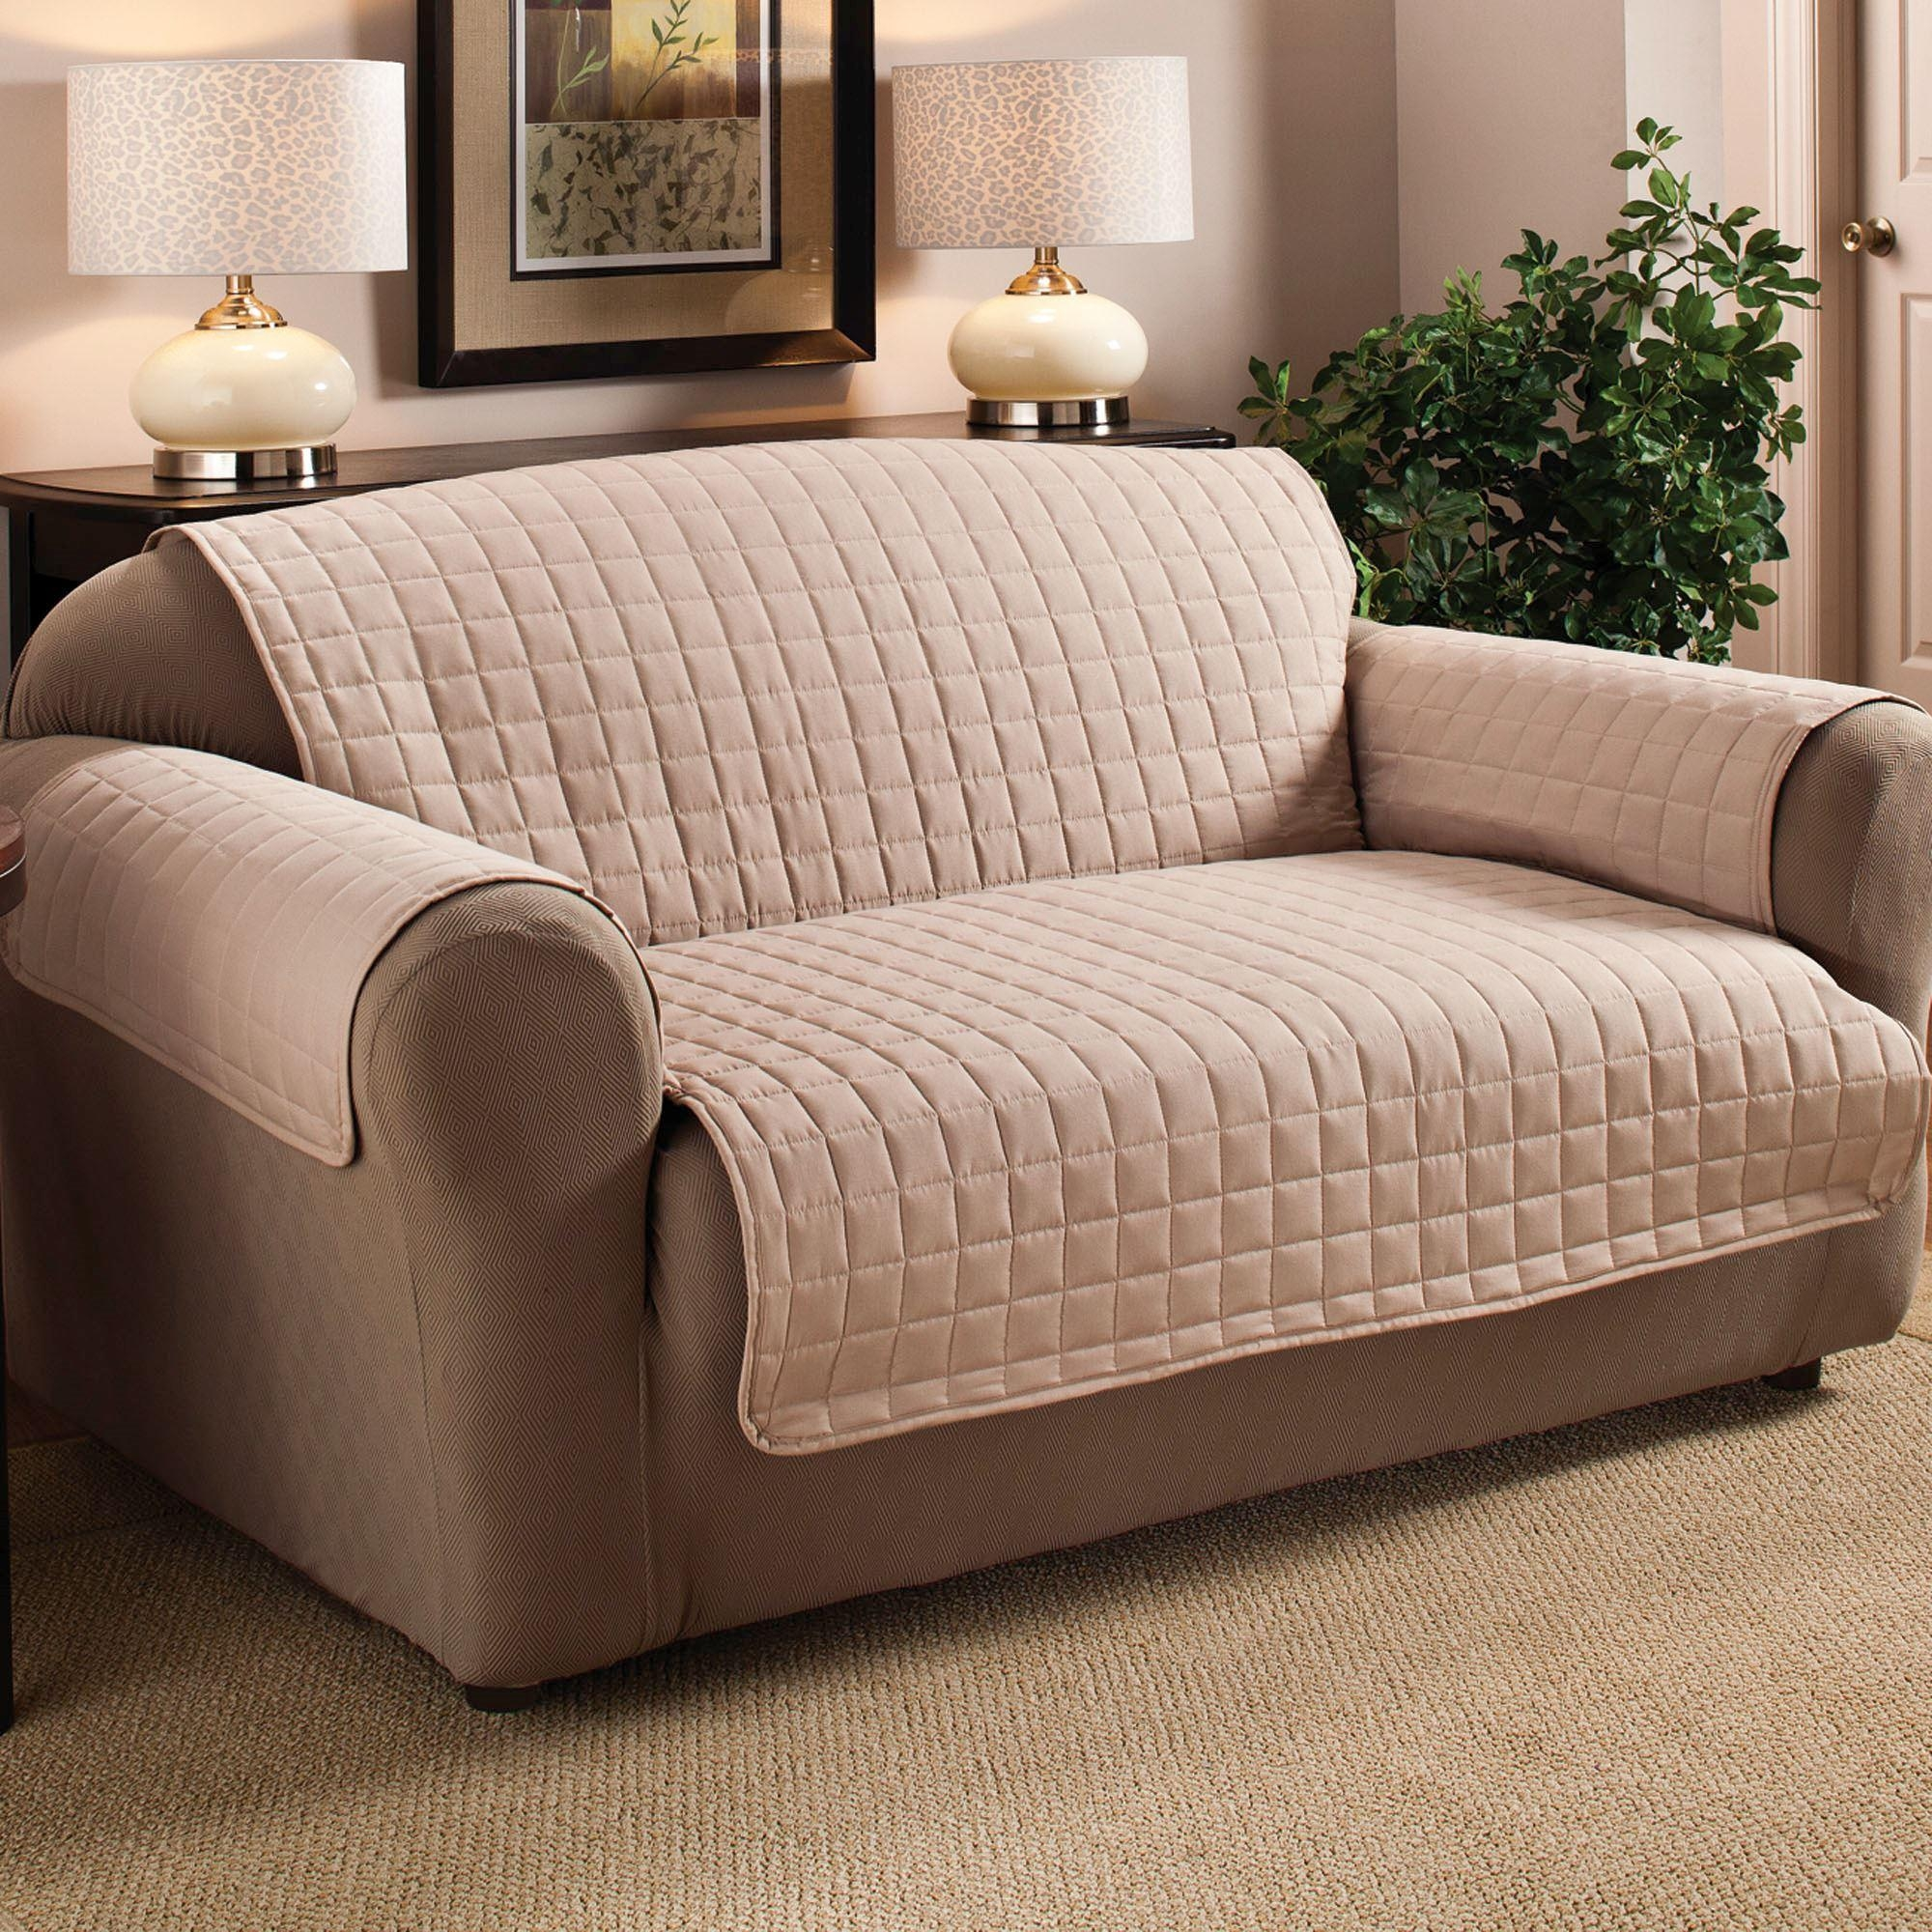 Microfiber Pet Furniture Covers With Tuck In Flaps With Pet Proof Sofa Covers (Image 8 of 20)